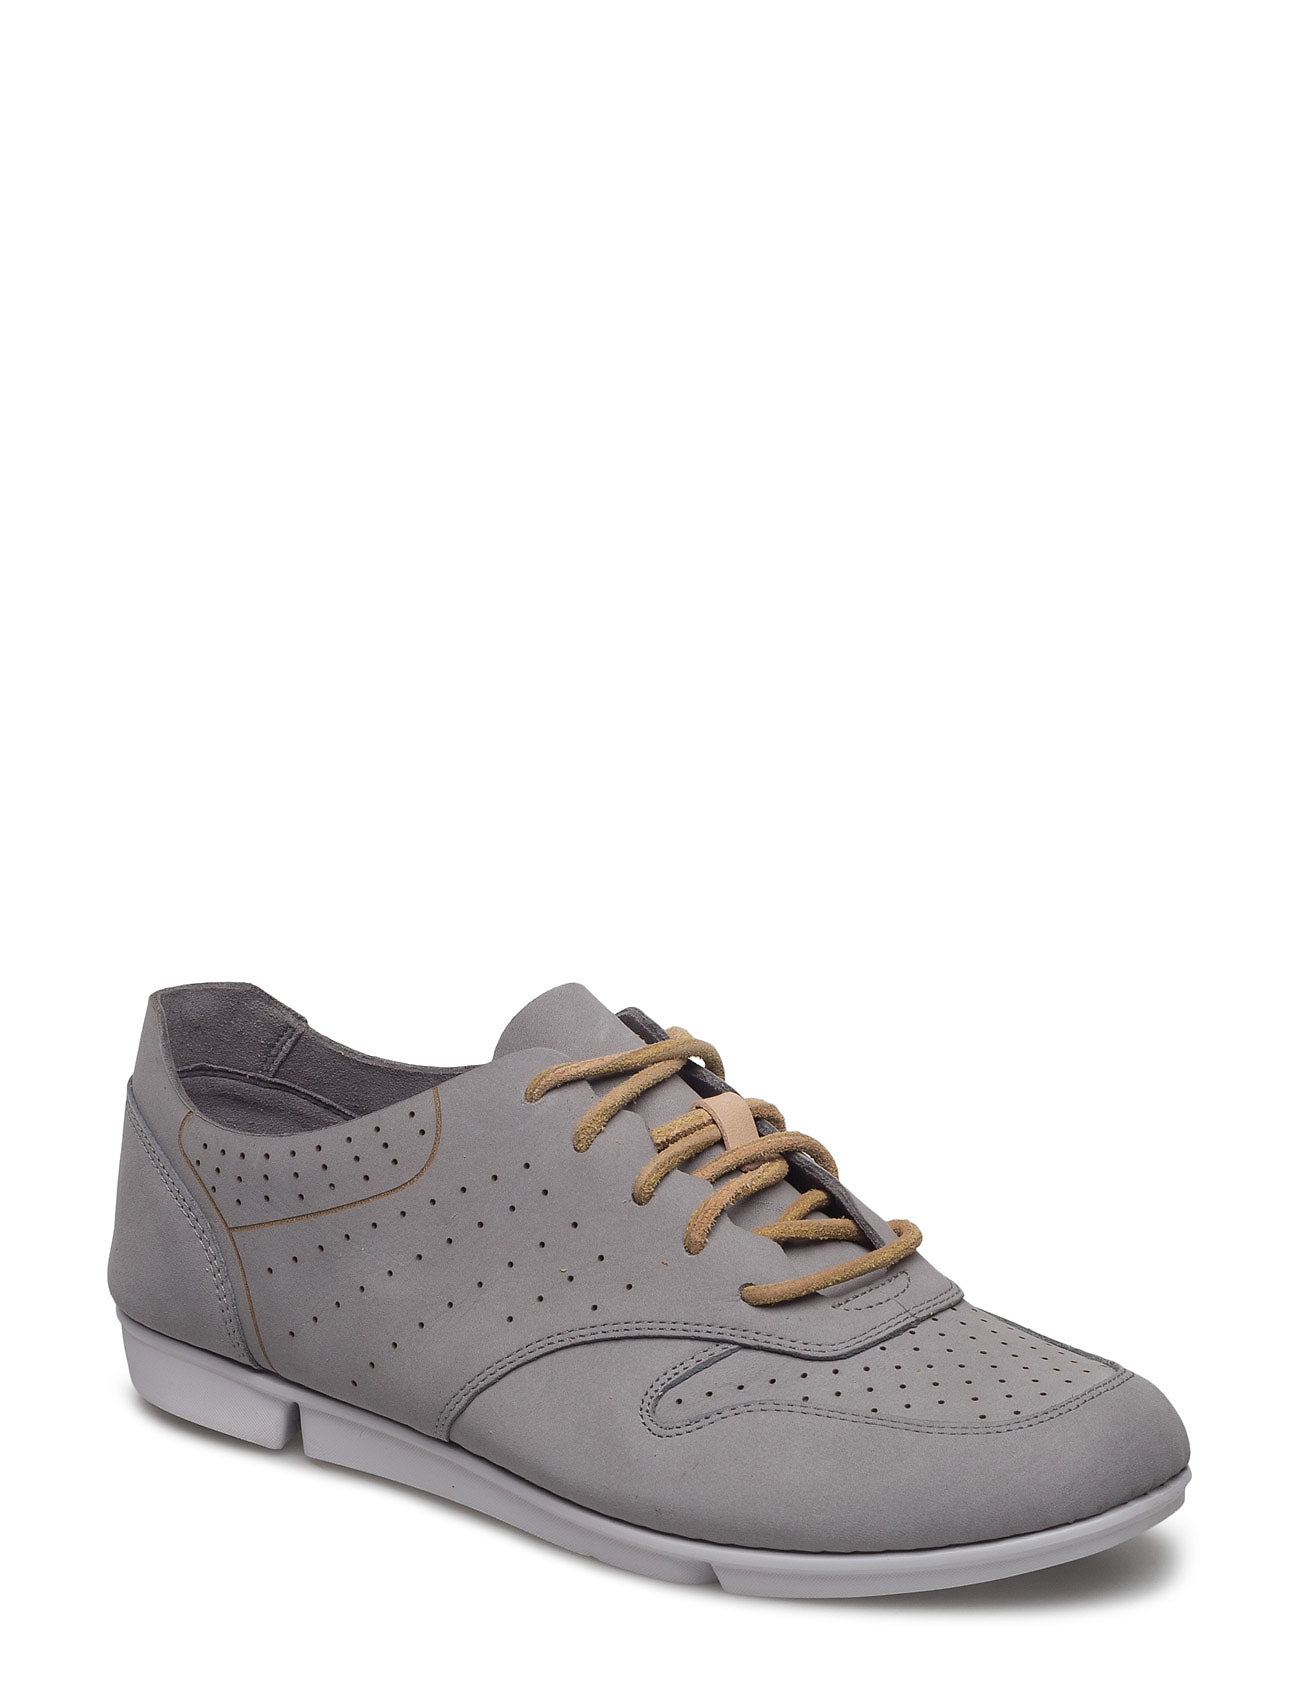 Tri Actor Clarks Sneakers til Damer i